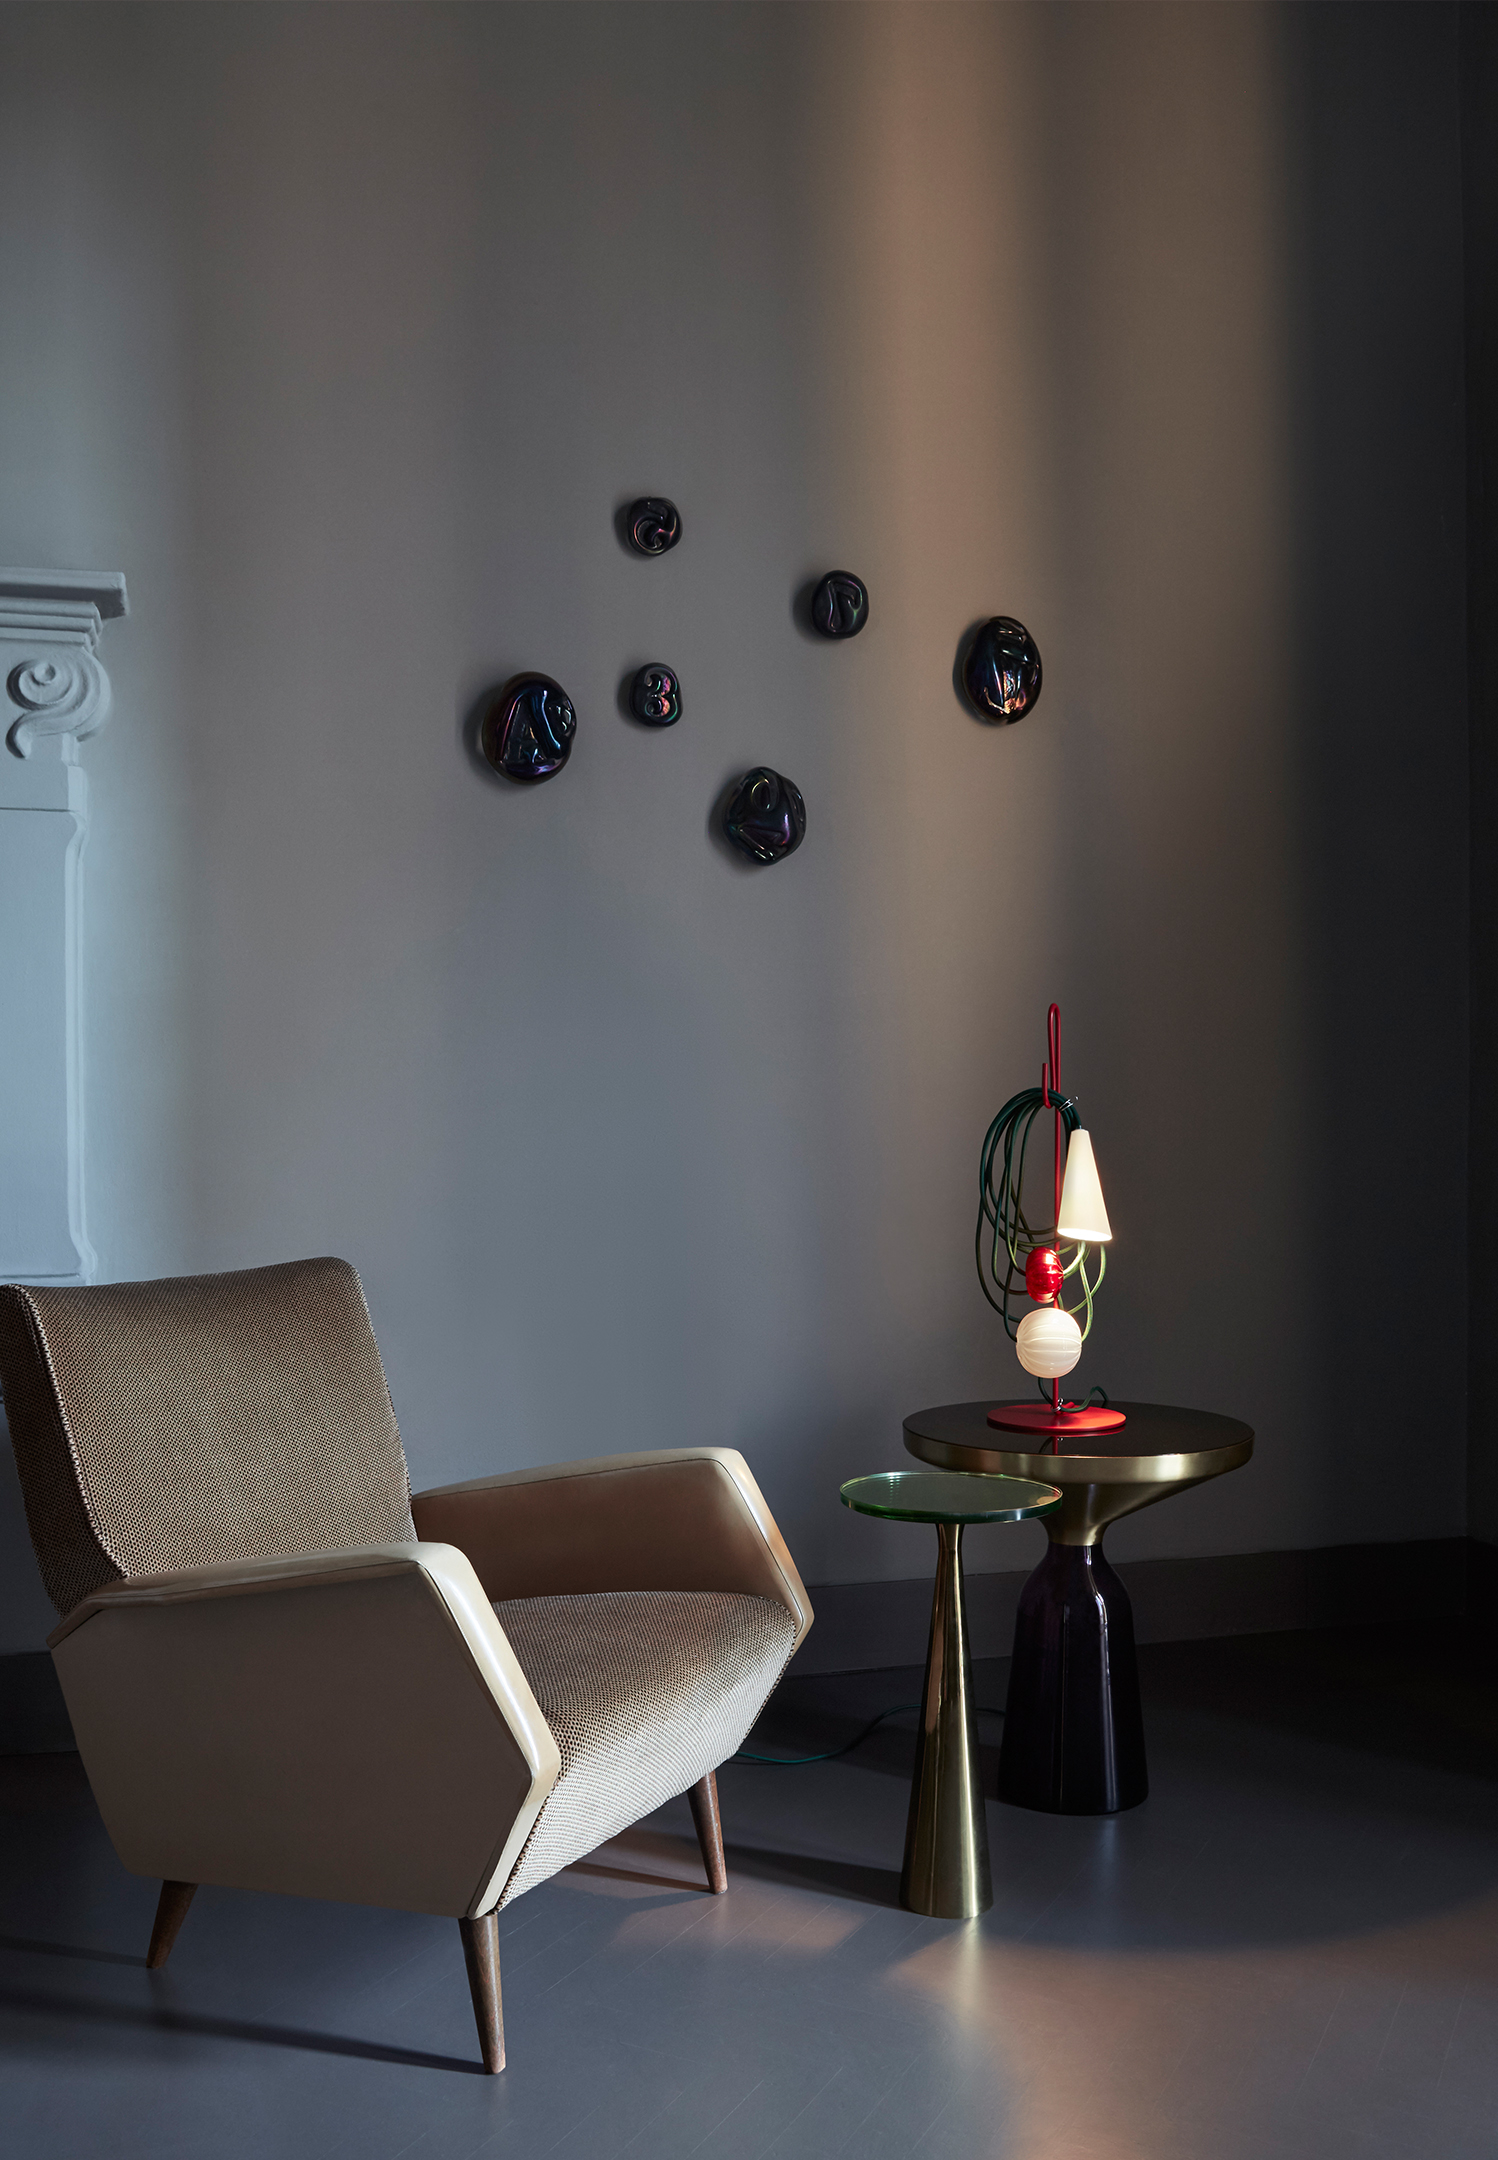 The table lamp was inspired by the idea of deconstructing the traditional lamp form.